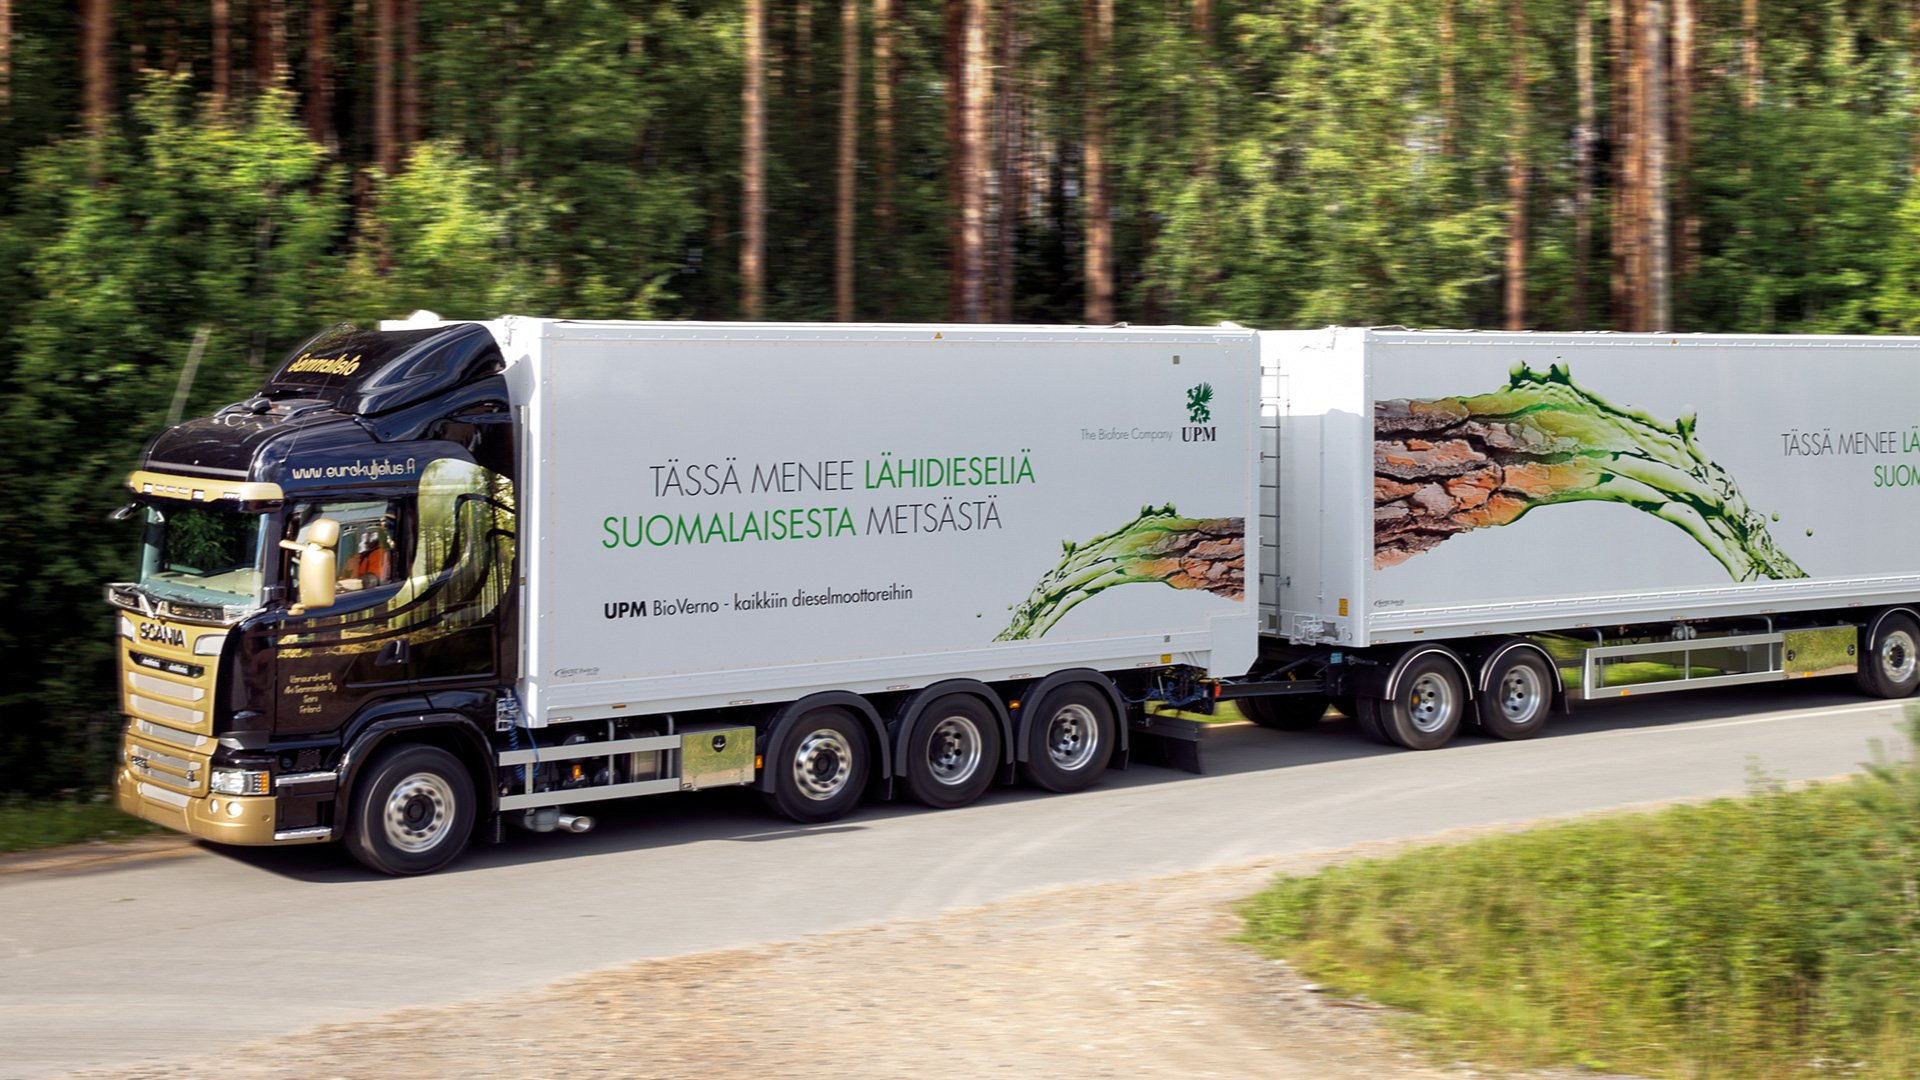 upm-biofuels-alternative-to-fossil-fuels.jpg